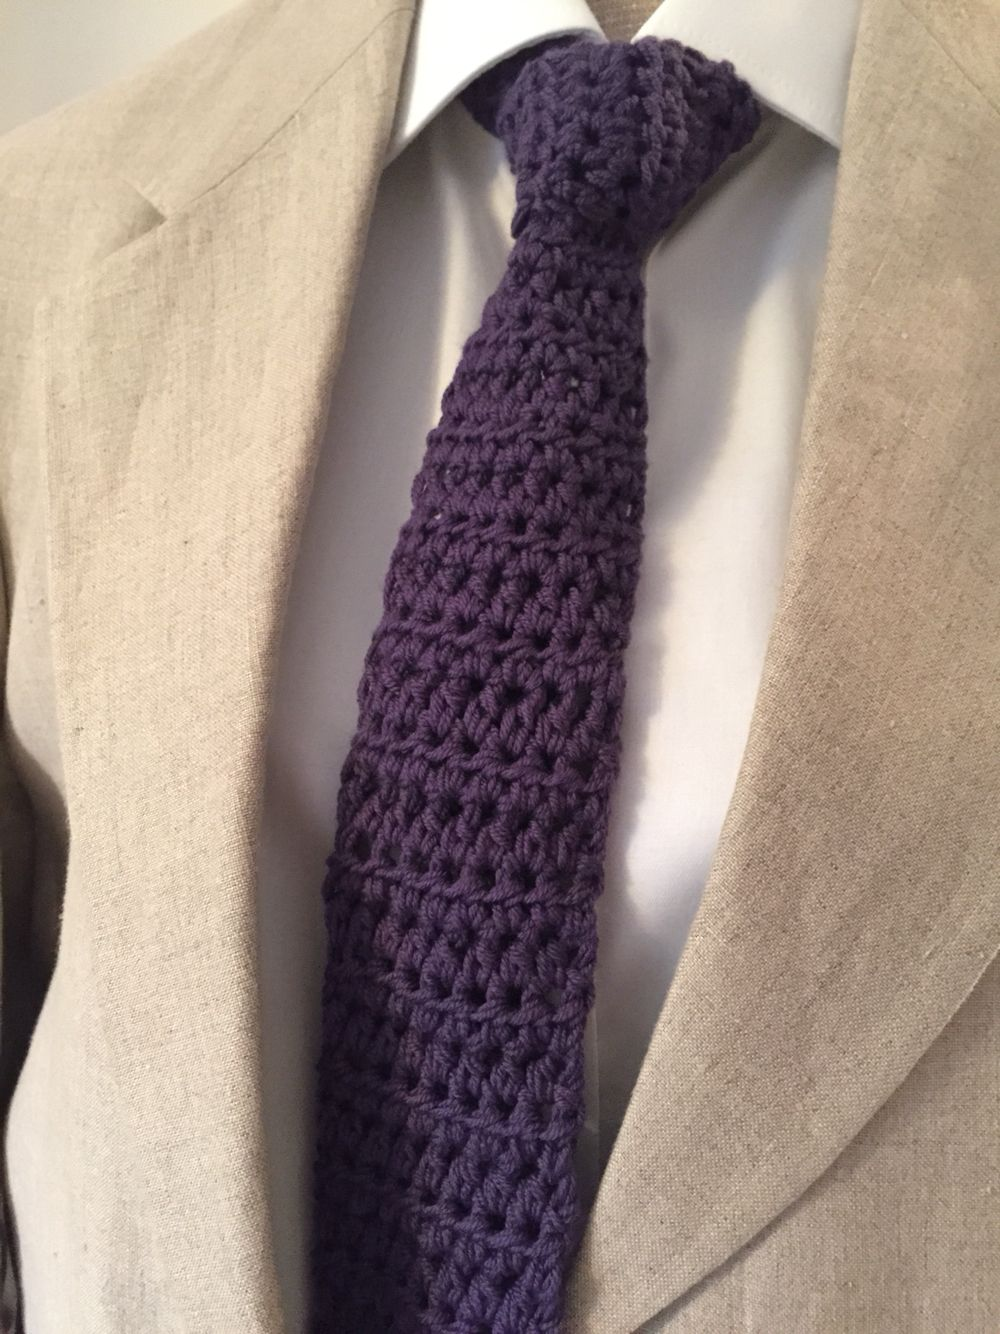 Crochet neck tie made for my Brothers birthday - purple is his ...